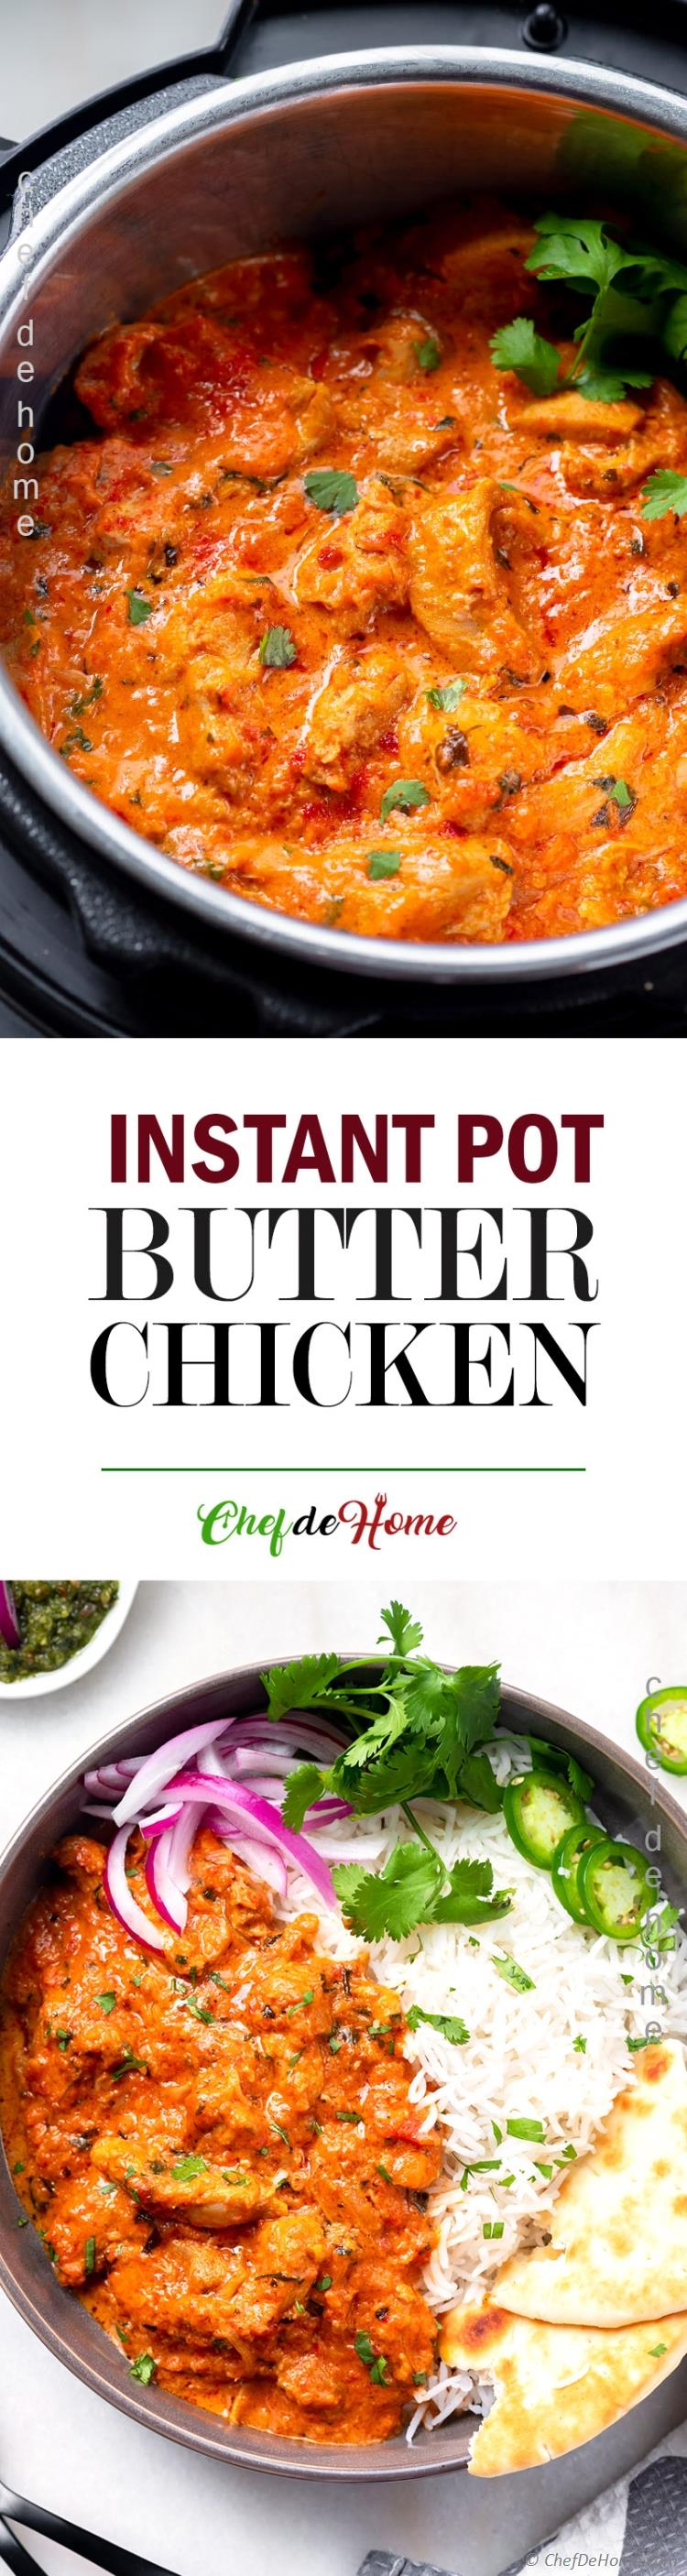 Best Instant Pot Butter Chicken - Tasty Easy